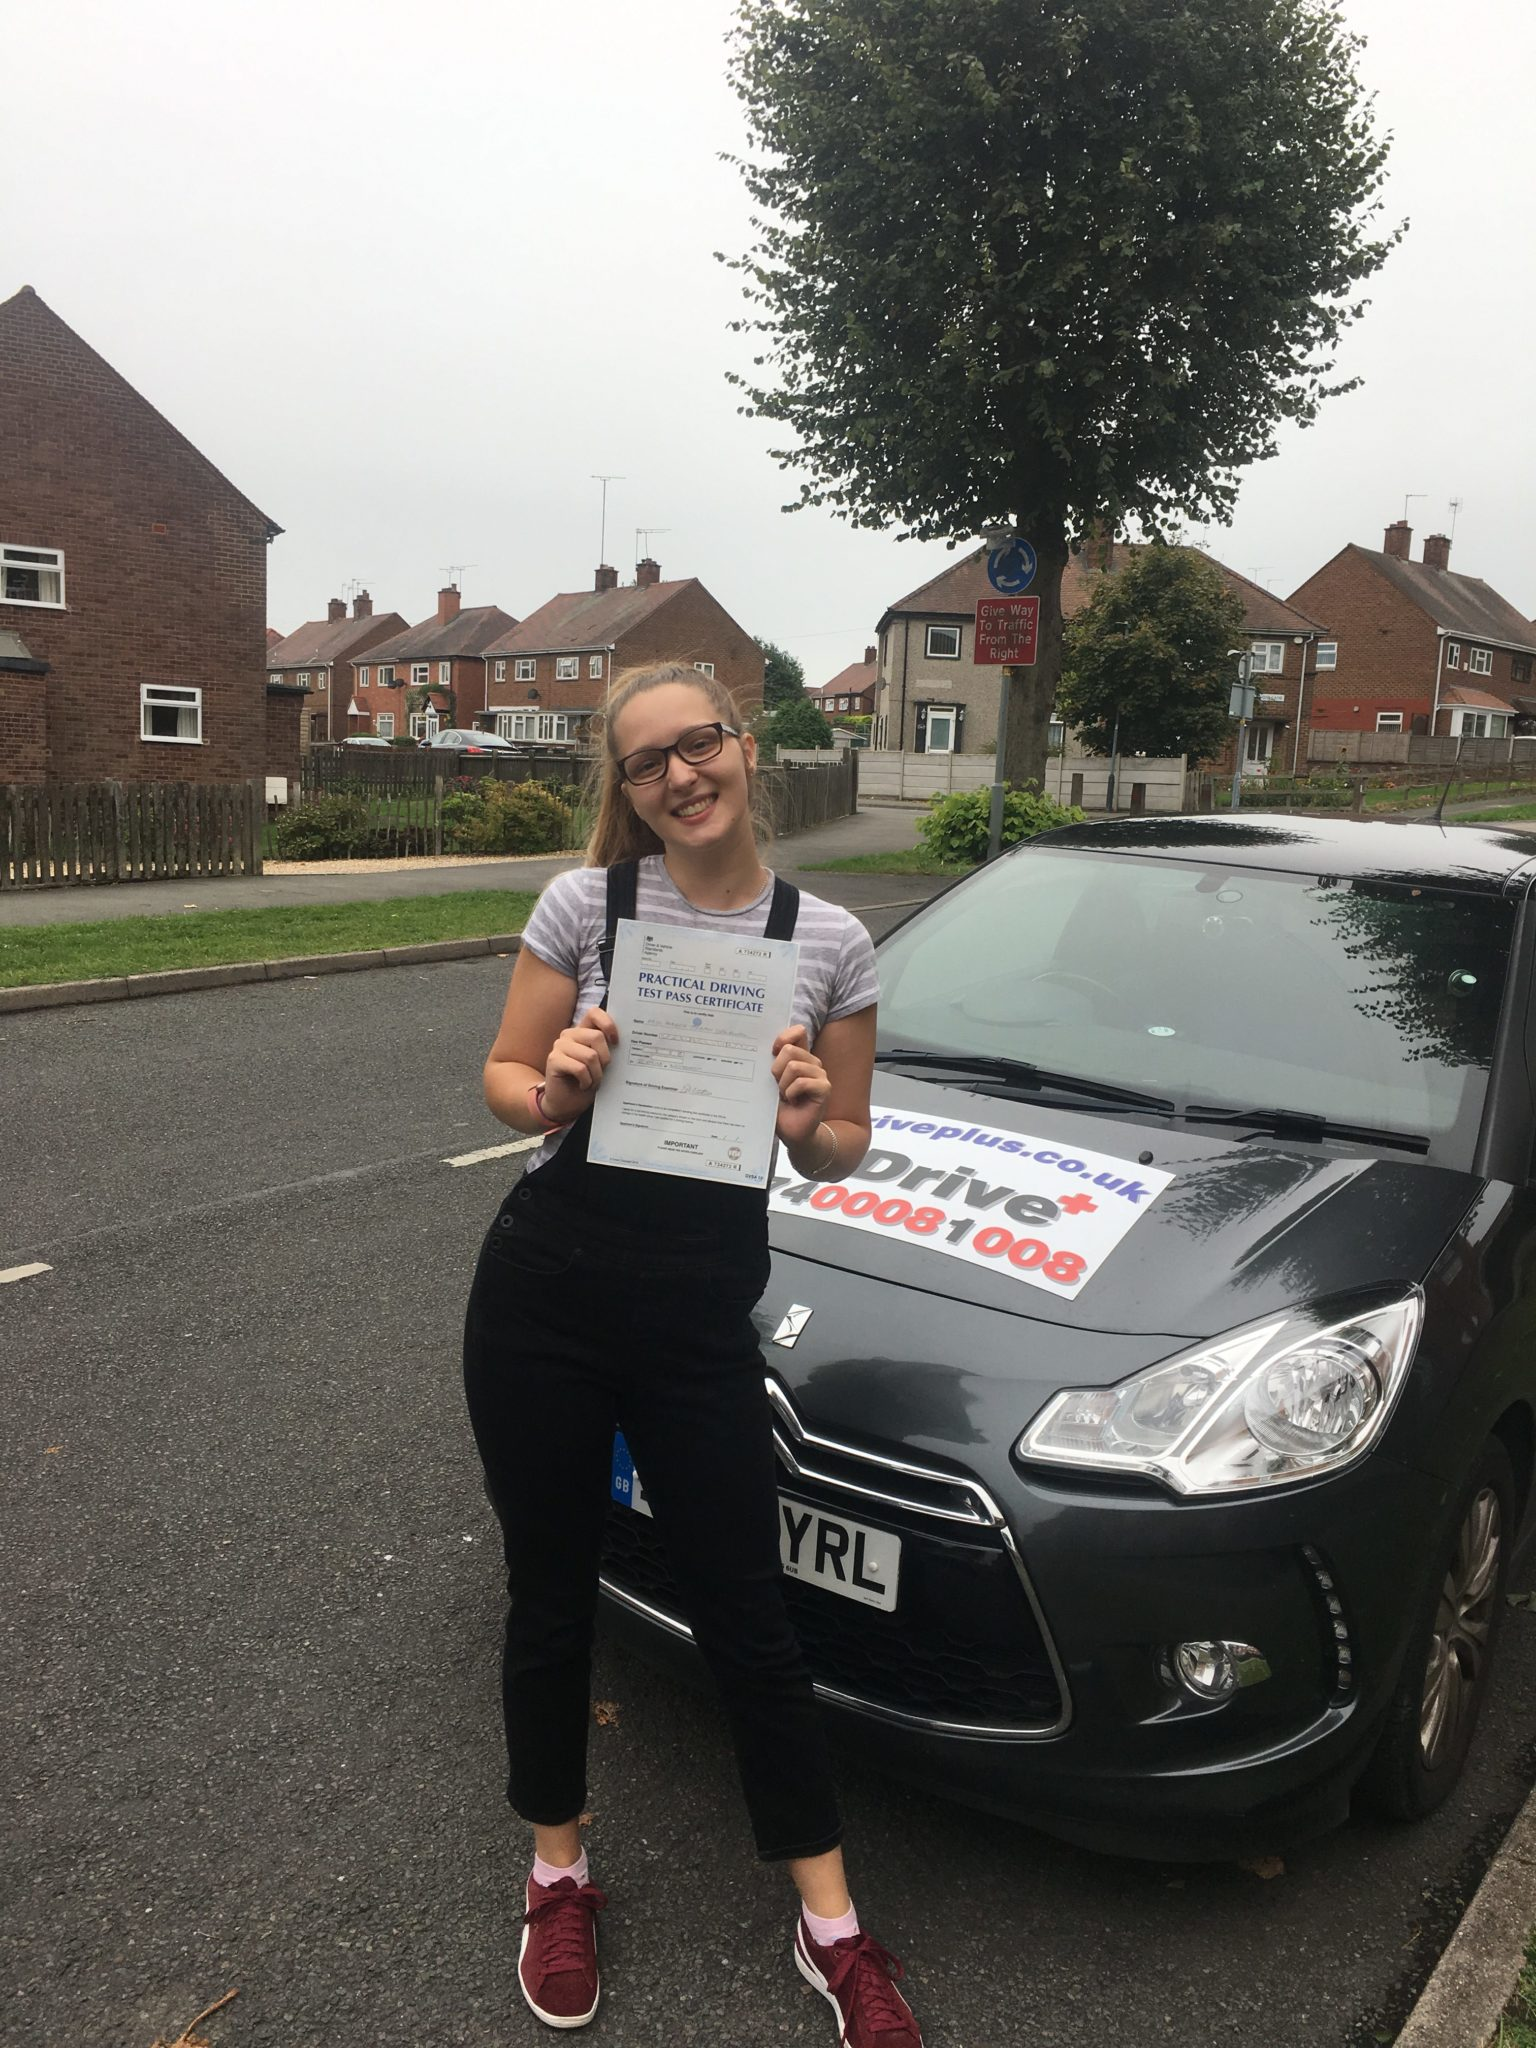 Passed Nuneaton 4 minors